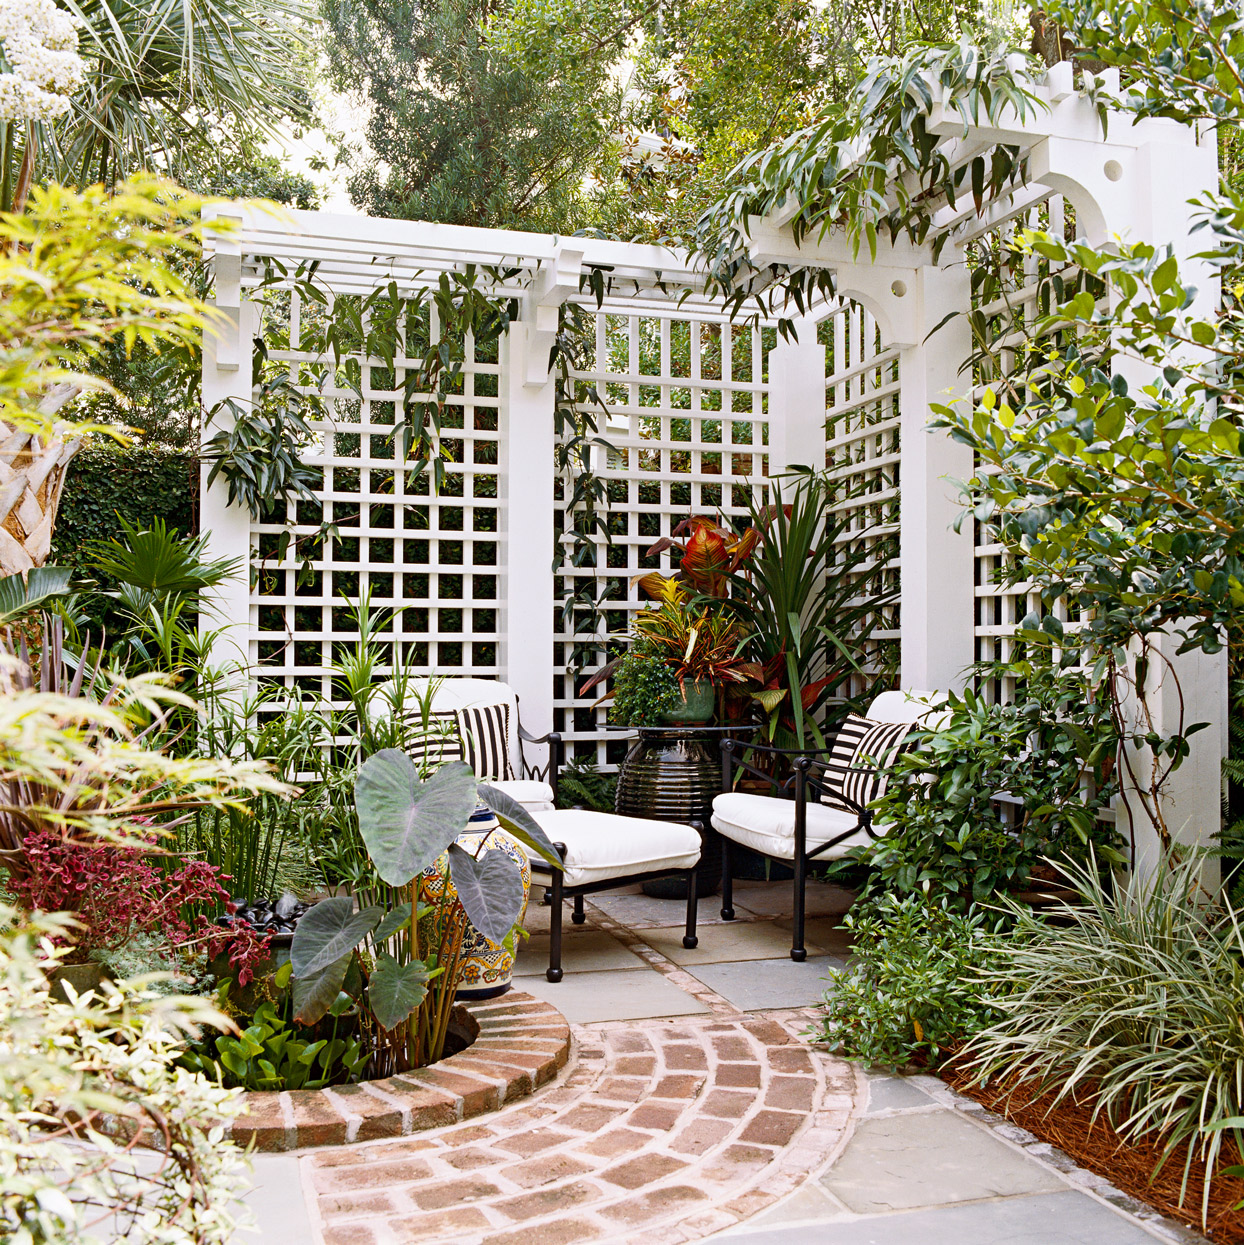 19 Beautiful Trellis Fence And Screen Ideas To Turn Your Yard Into A Private Escape Better Homes Gardens